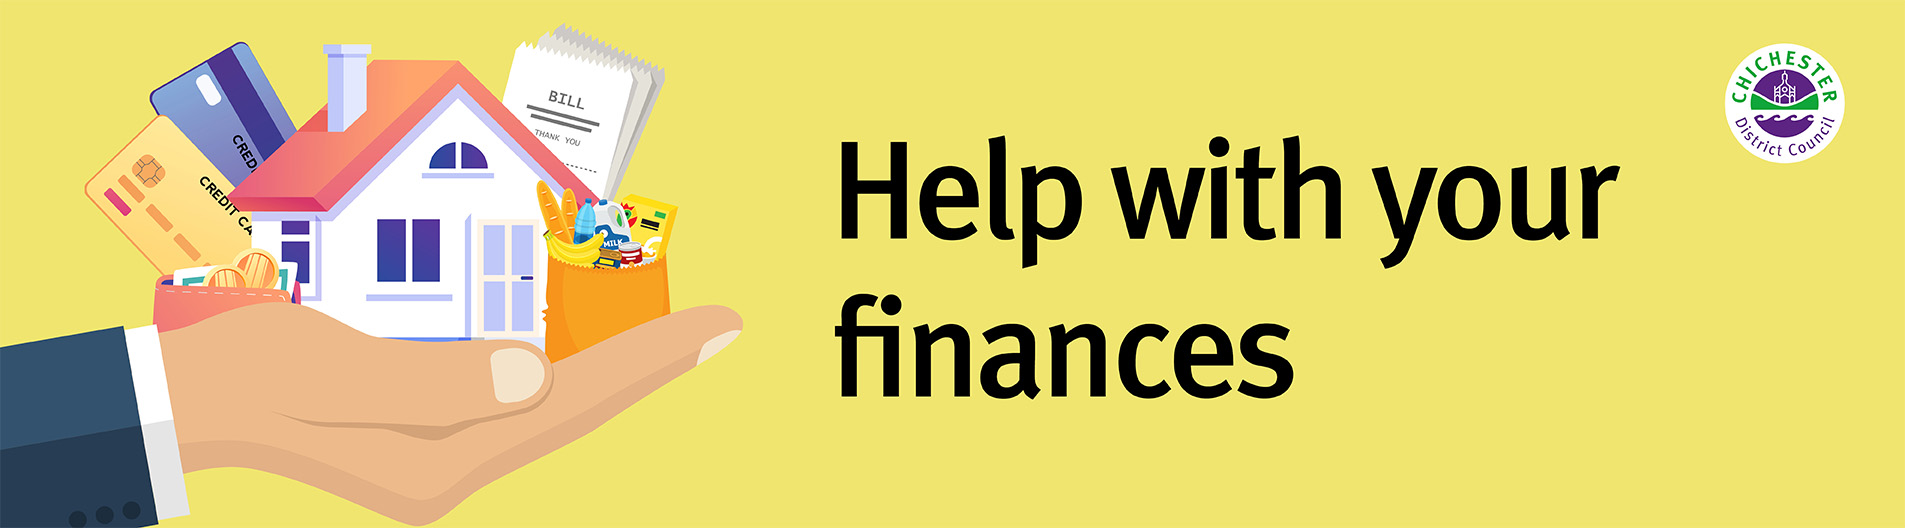 Get help with housing payments and bills